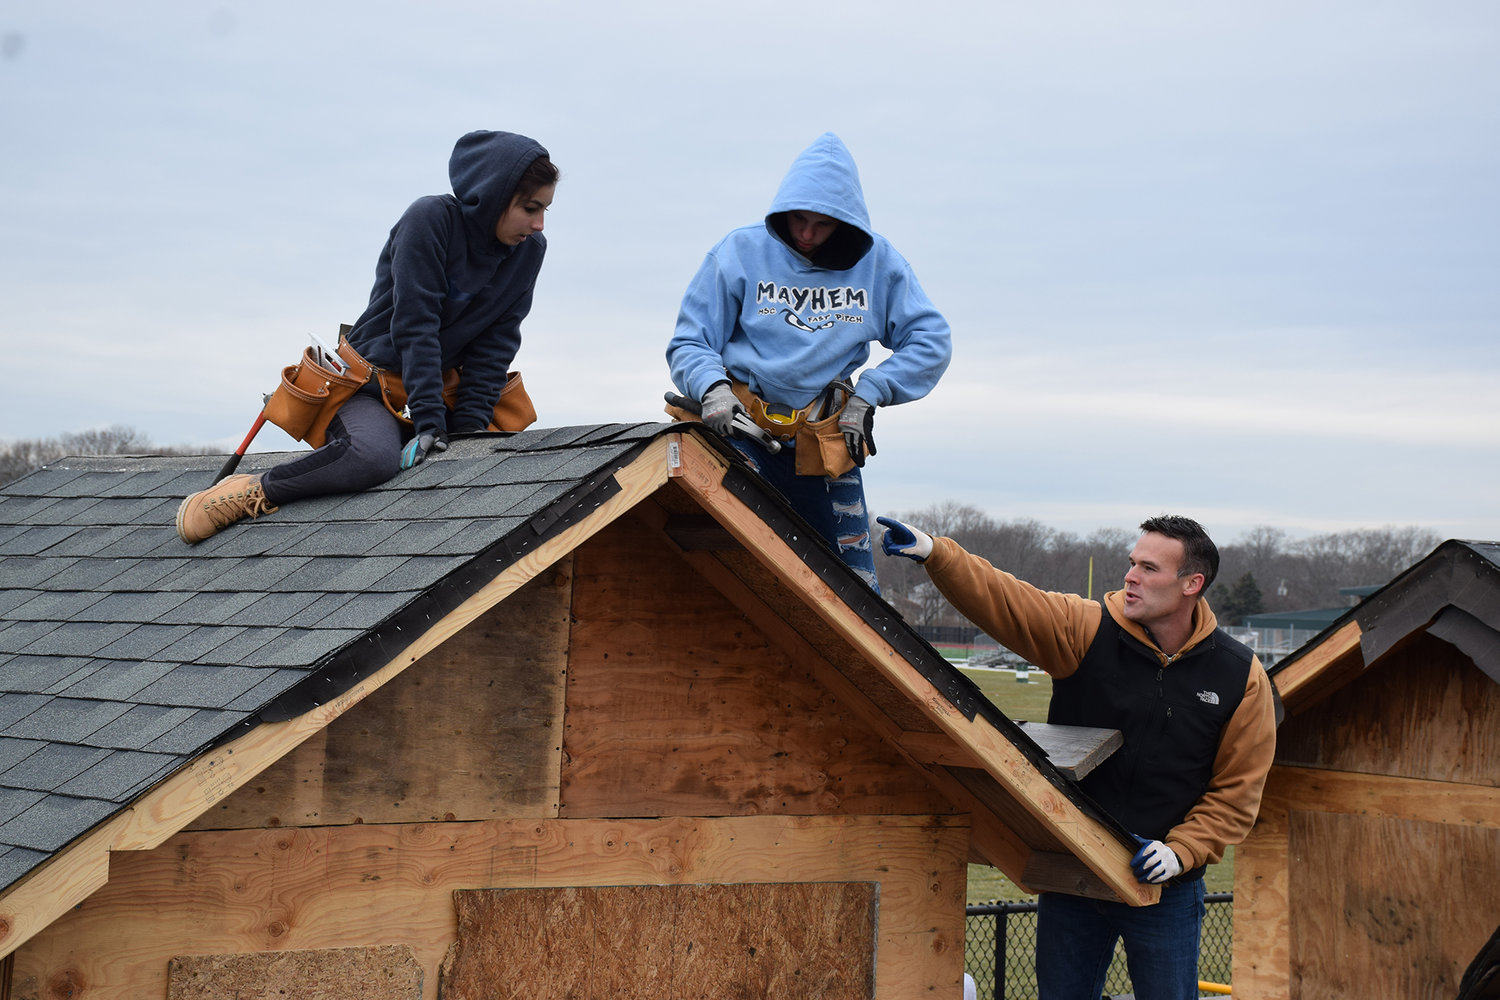 Yep, there are girls on the roof: Juniors Giovanna Capitello (left) and Lauren Chavez (center), carpentry students at William Floyd High School, install the roof on their shed project with the help of teacher Mathew Van Horne (right).